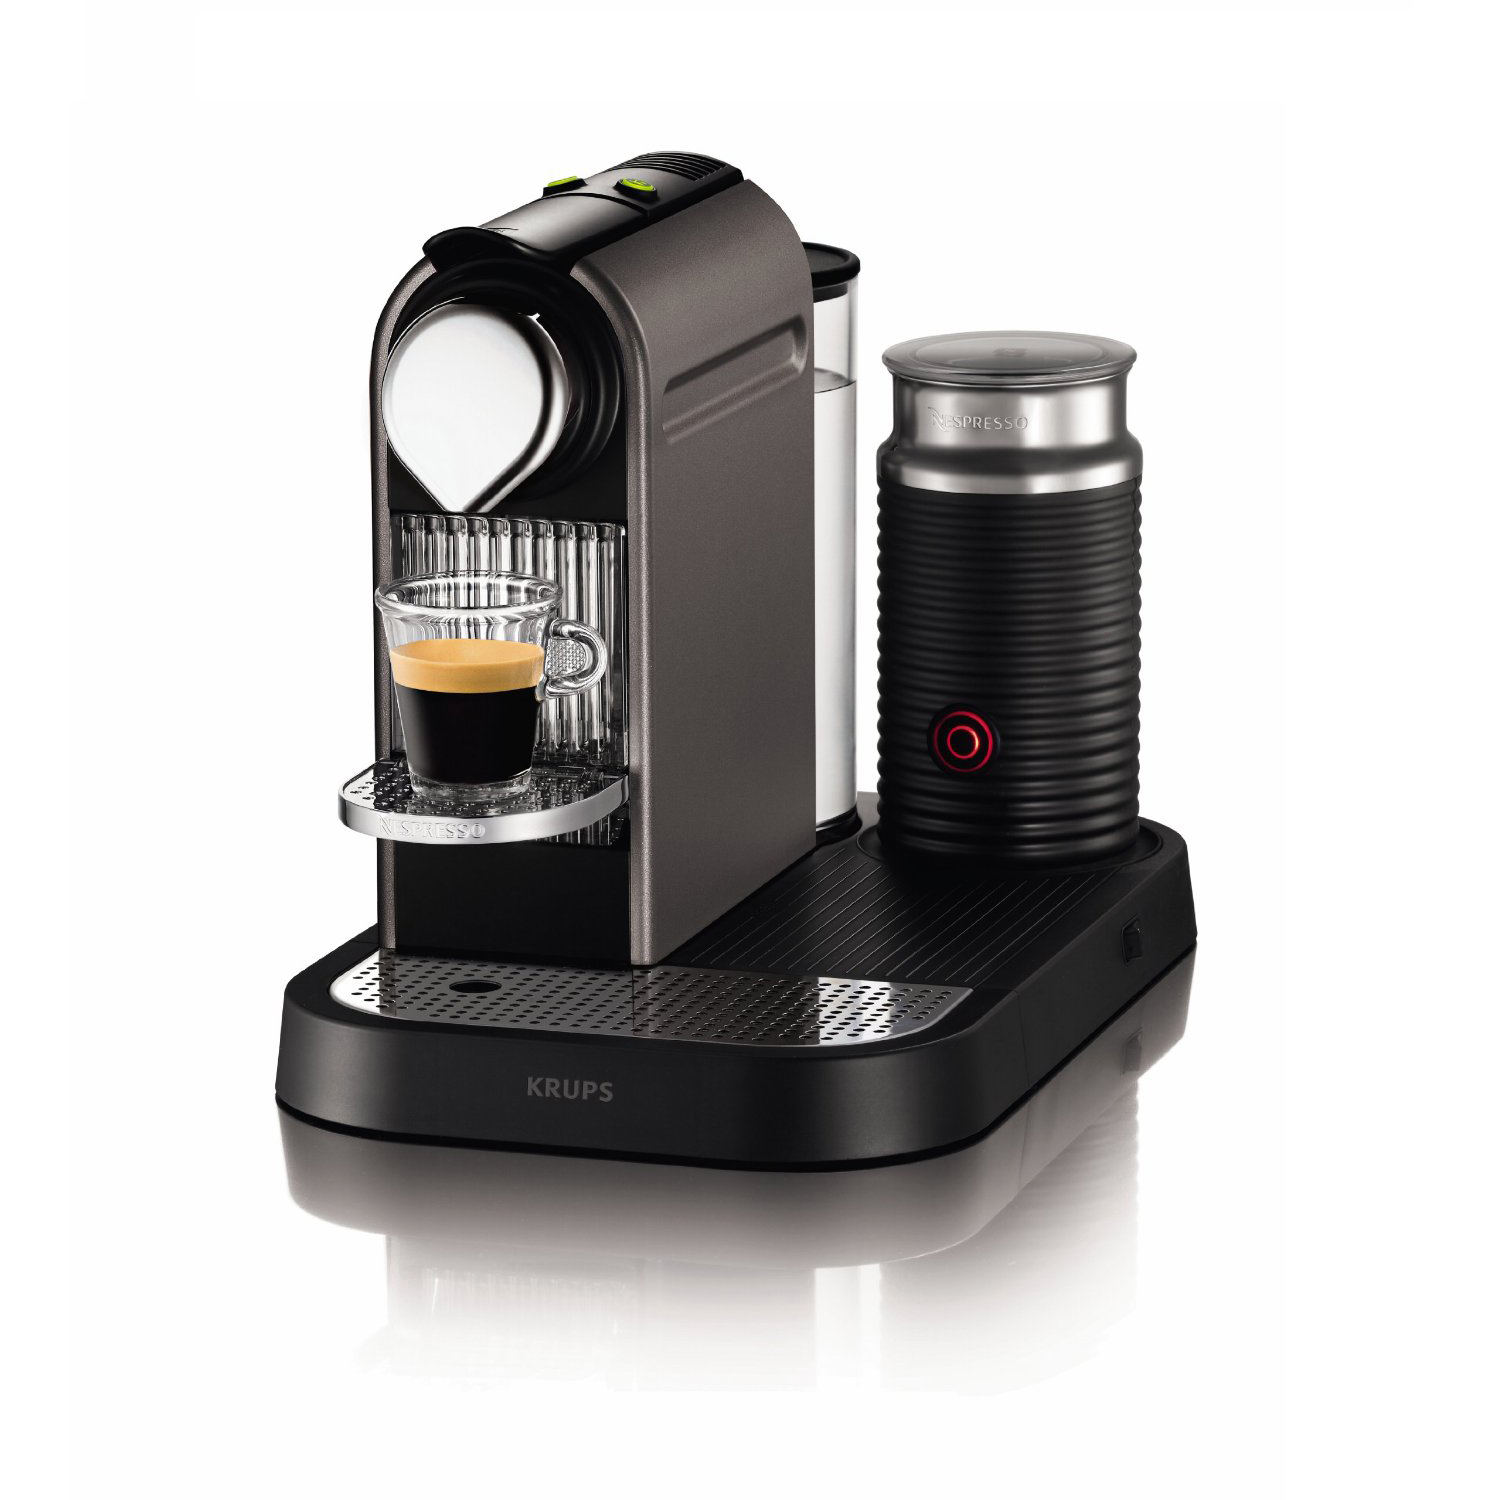 Krups coffee machines - Machine a cafe krups nespresso ...